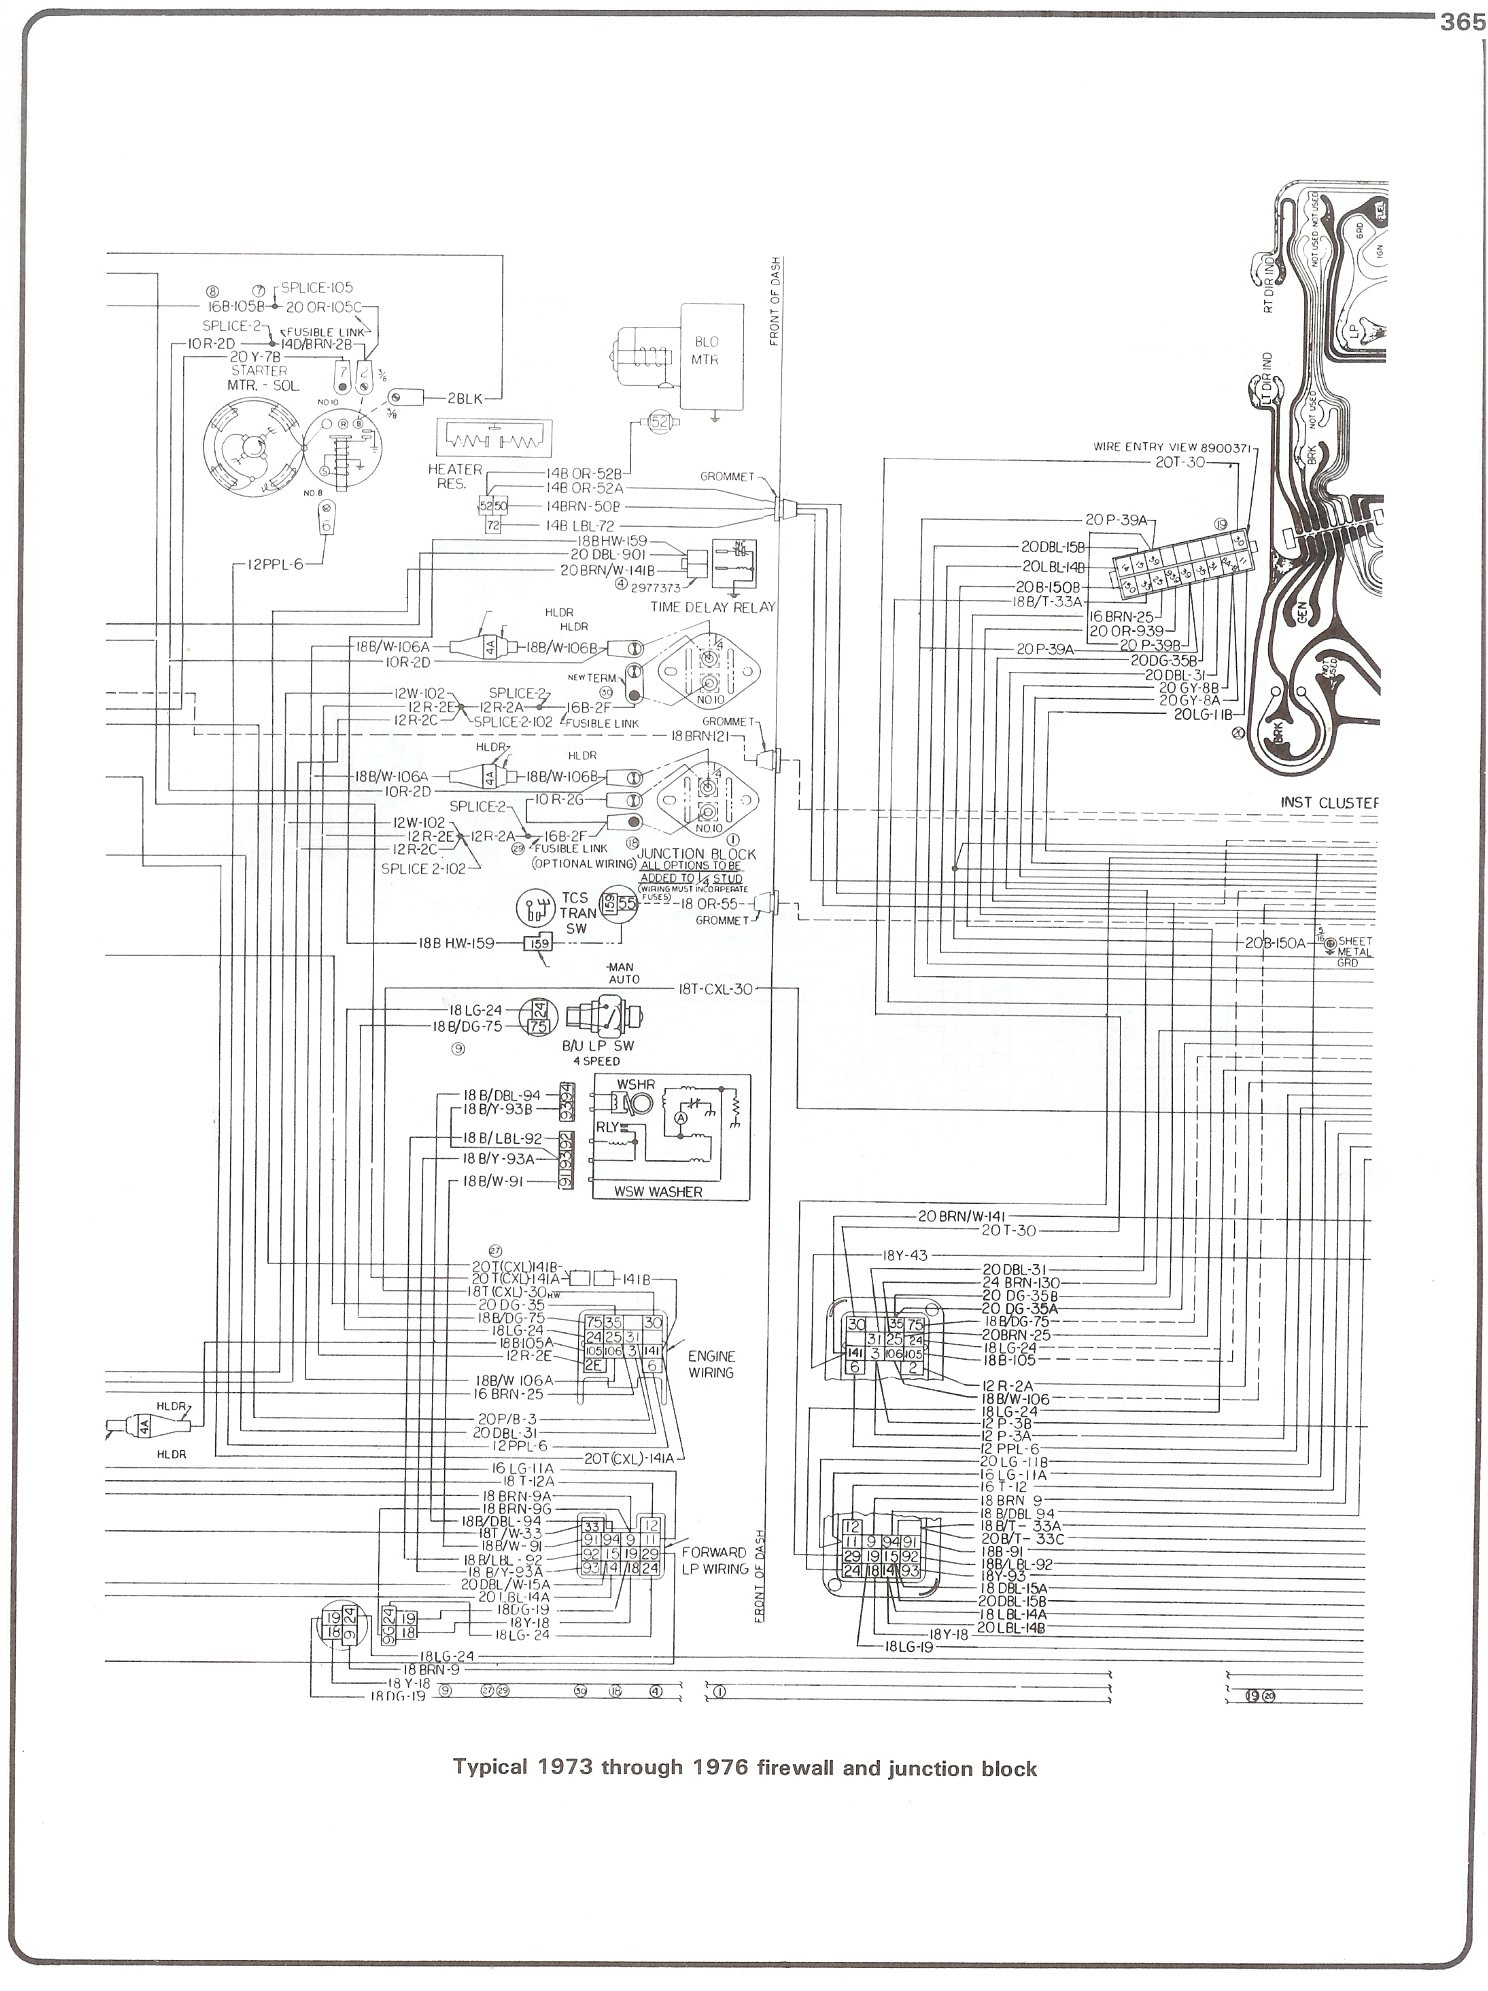 73 76_firewall_junct complete 73 87 wiring diagrams 1978 chevy truck ignition wiring diagram at readyjetset.co